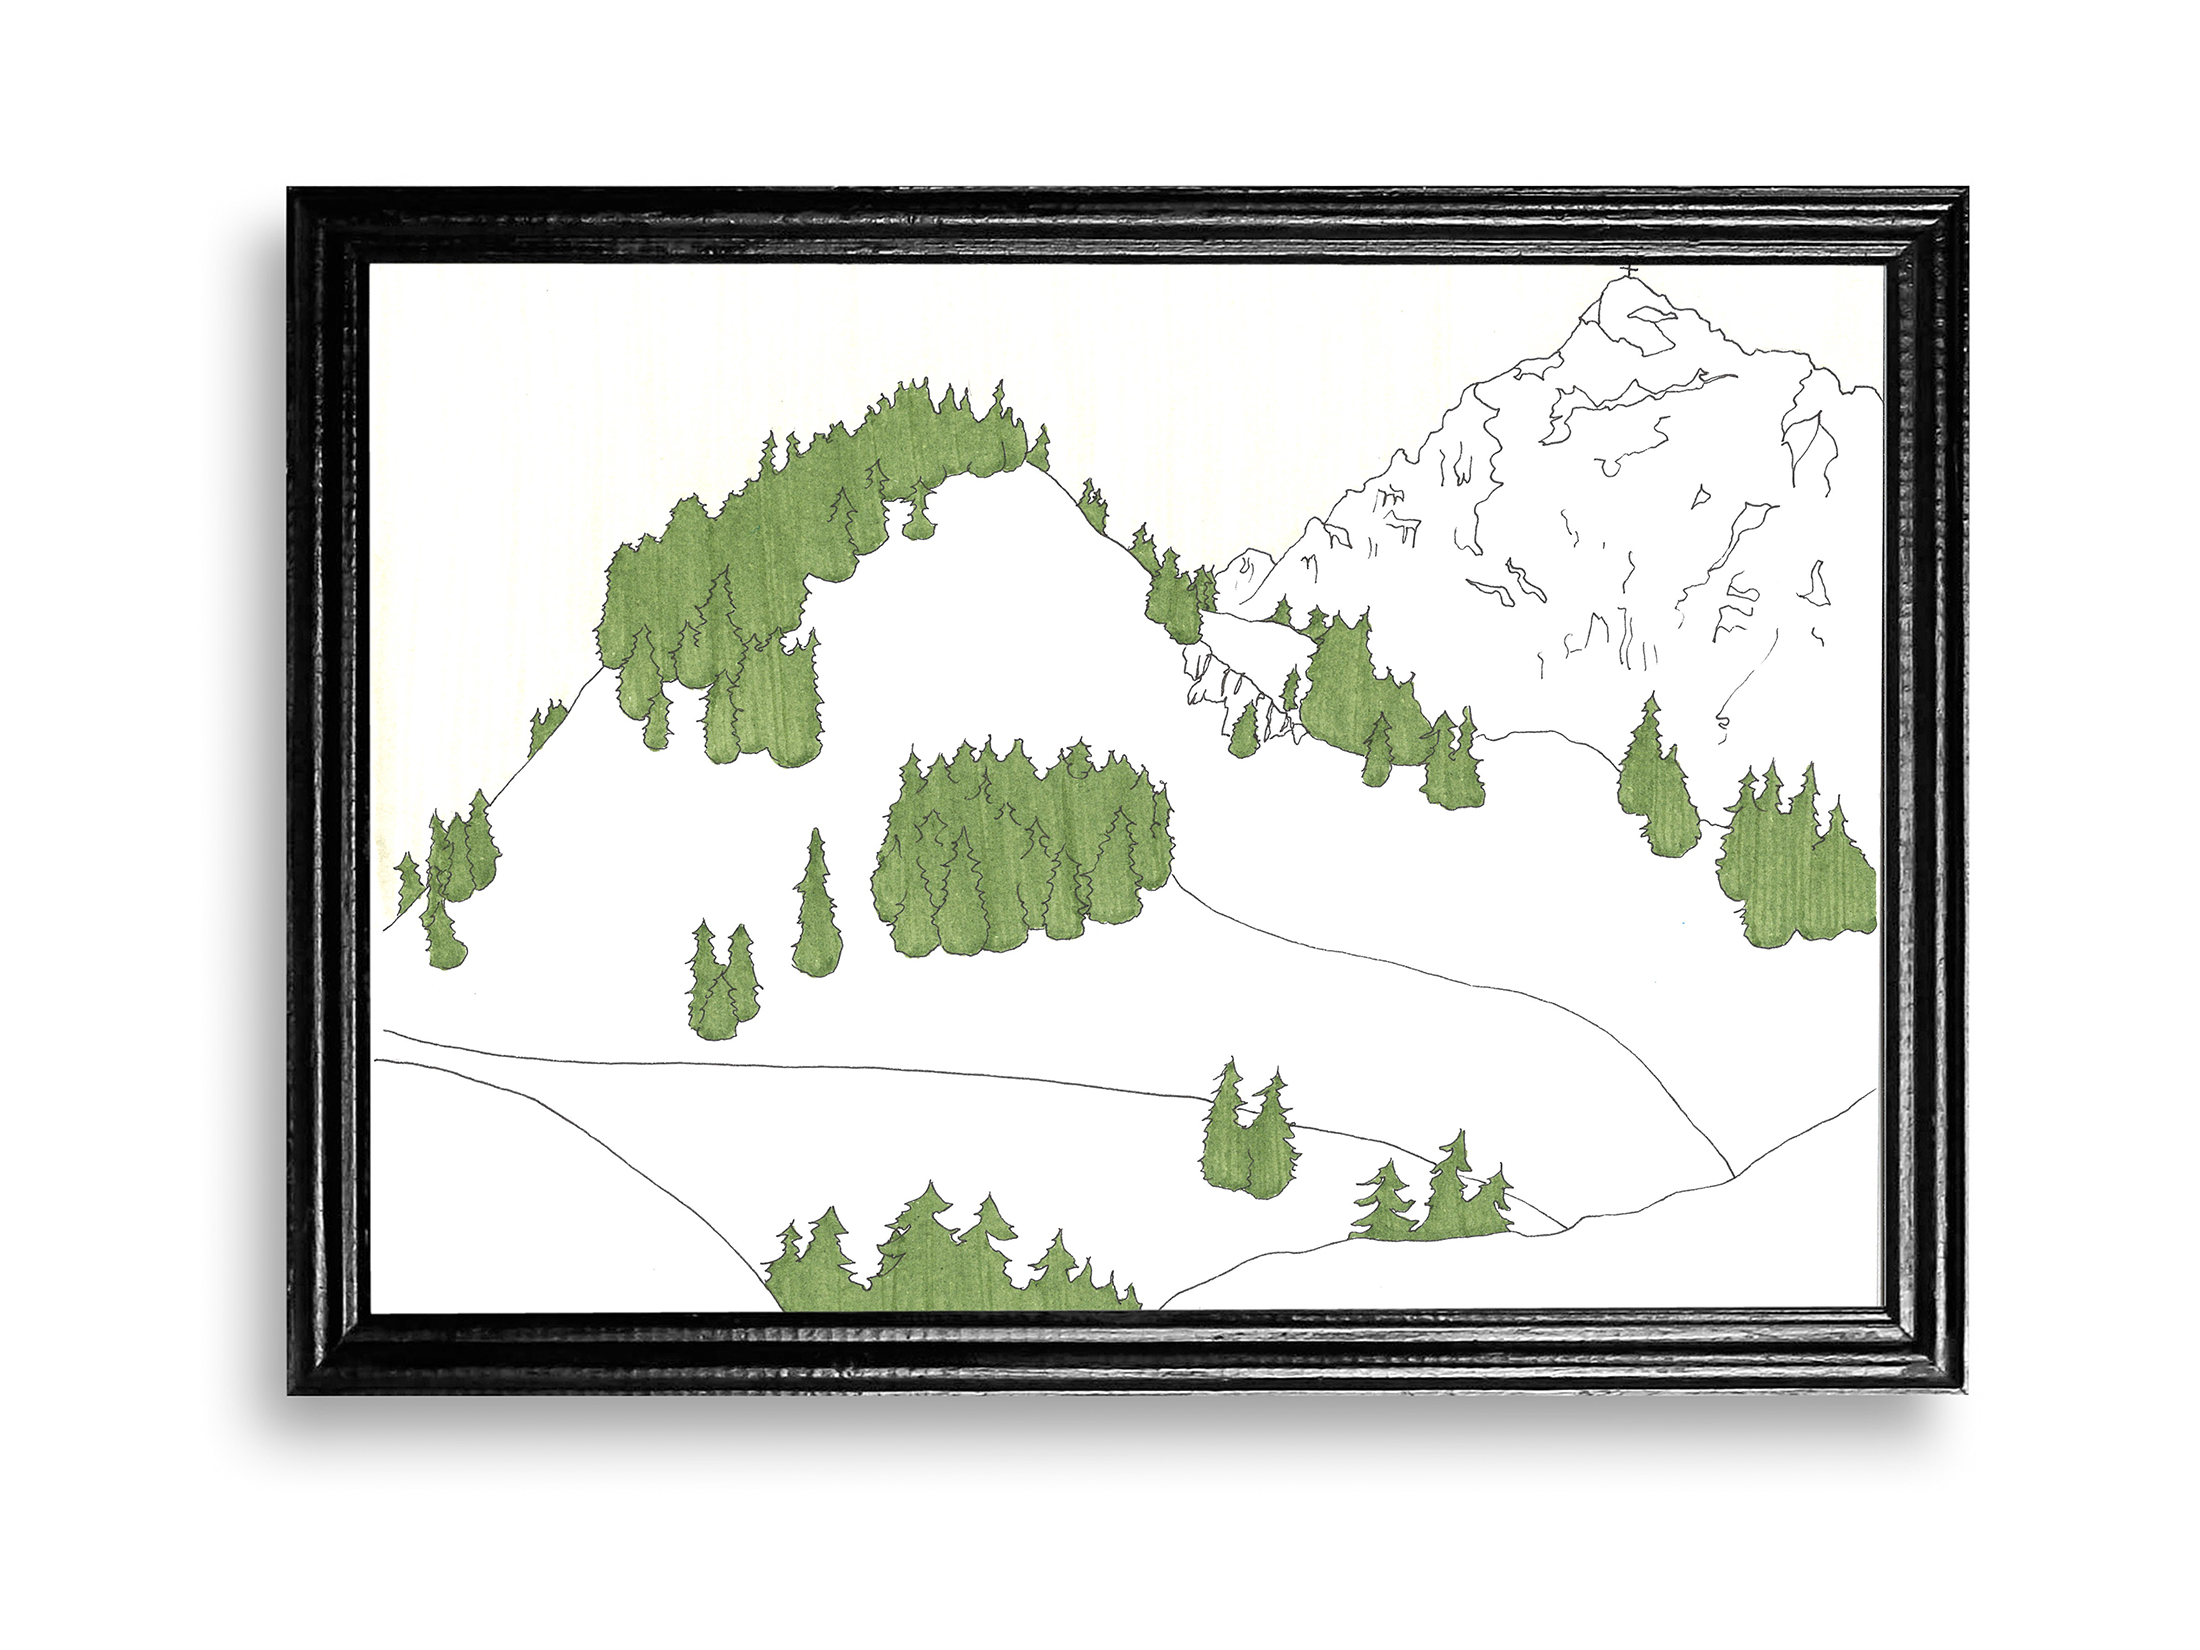 anna stemmer-dworak, drawing, illustrator, female artist, austria, landscape, snowy mountains